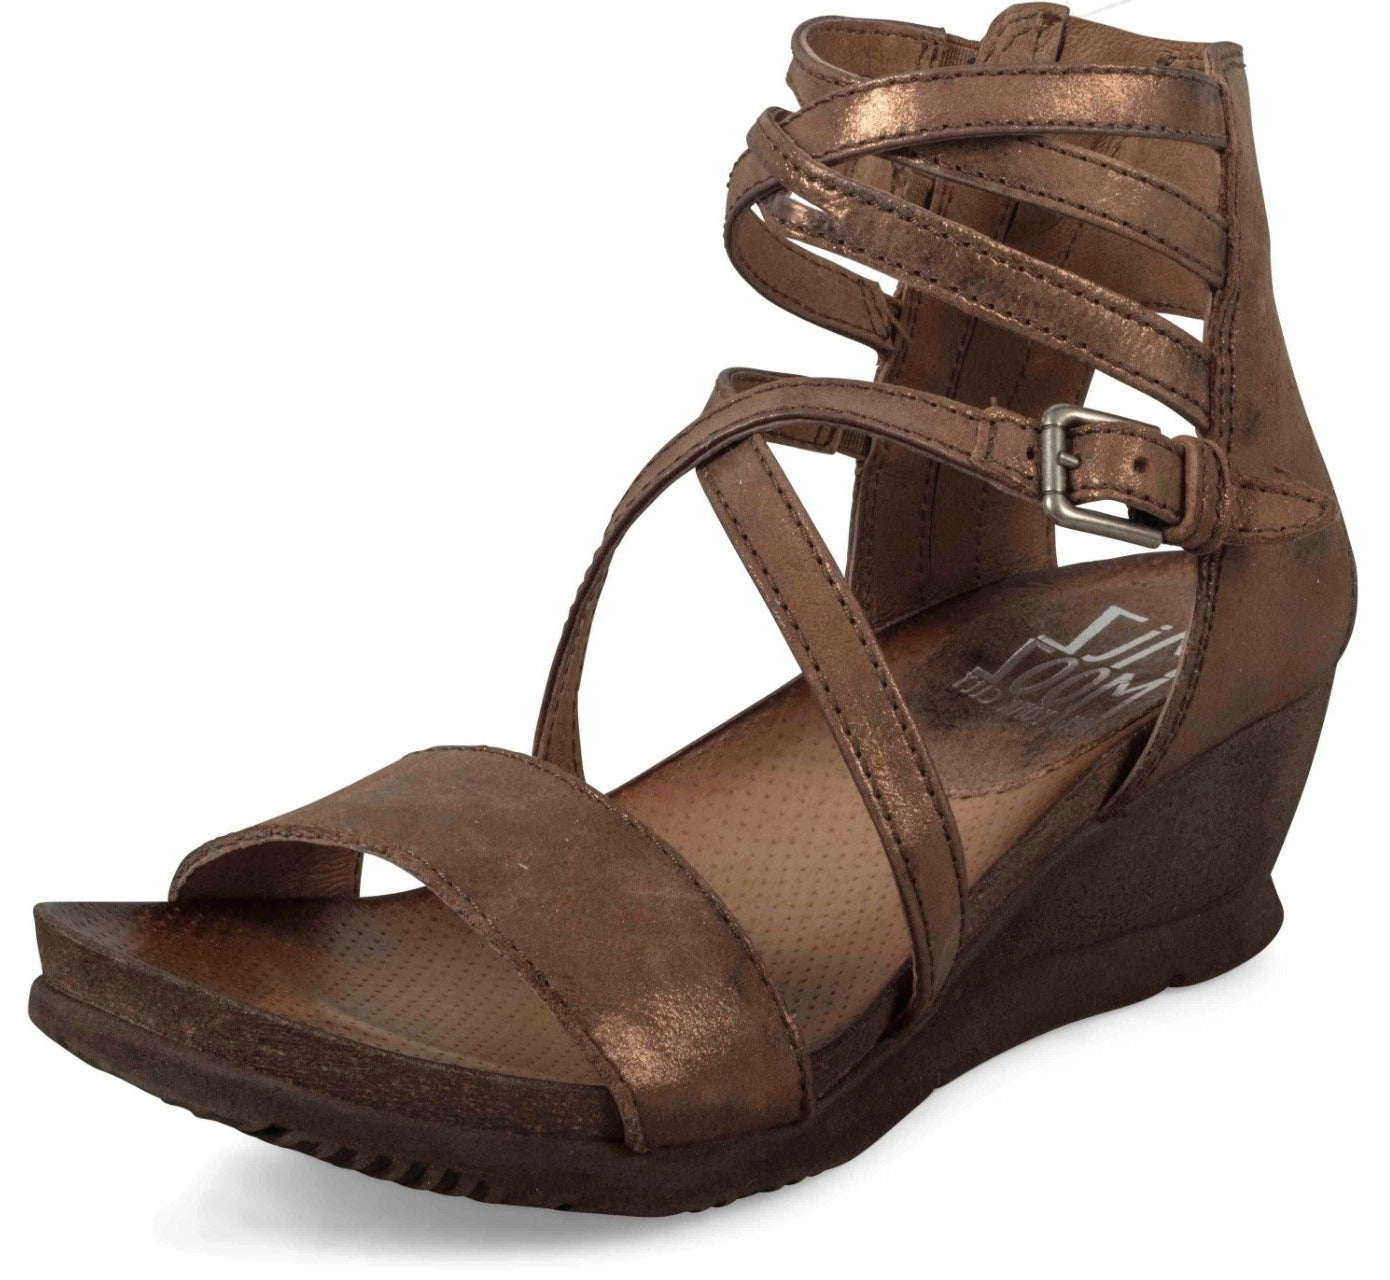 W. SHAY WOMEN - Footwear - Sandals Teskeys Teskeys